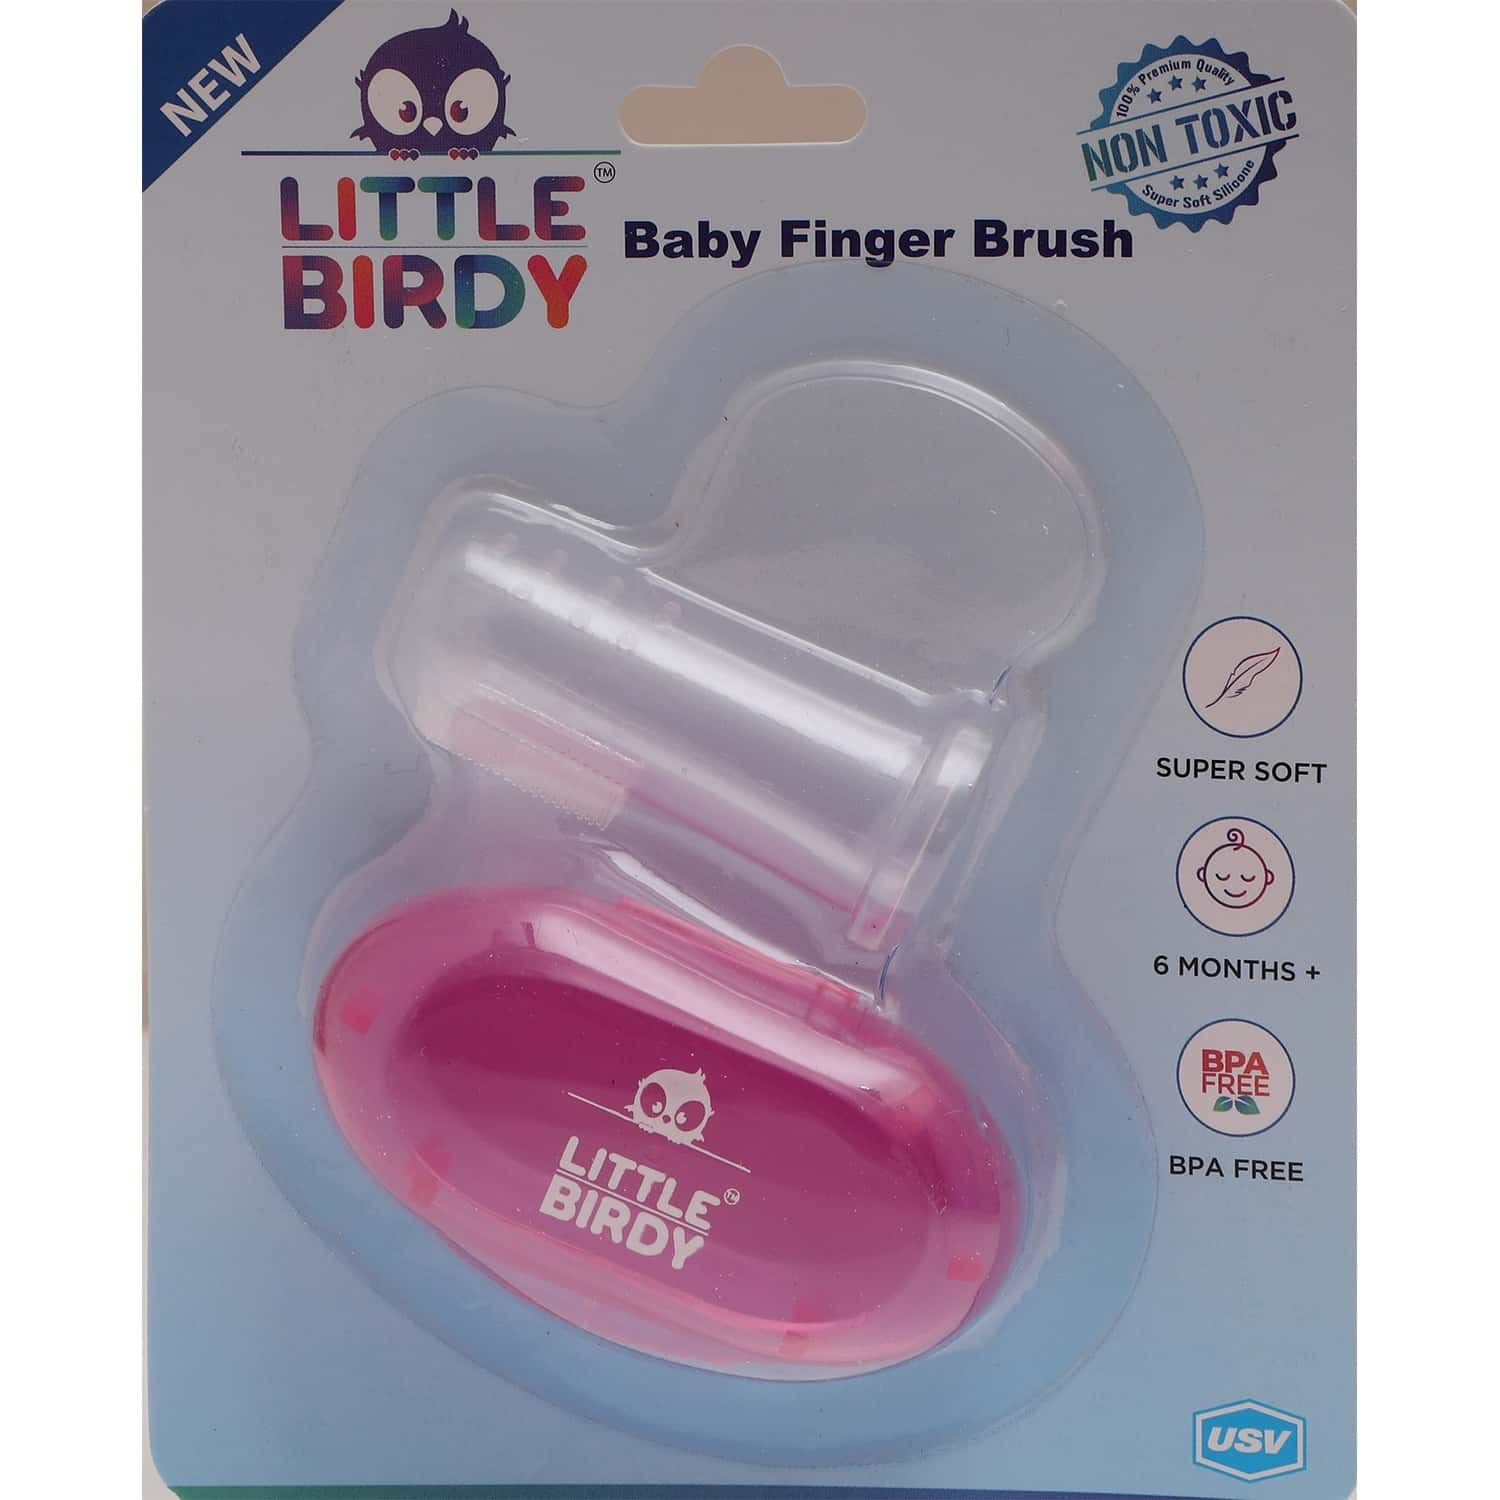 Little Birdy Baby Finger Brush In Pink Case - 1 Unit